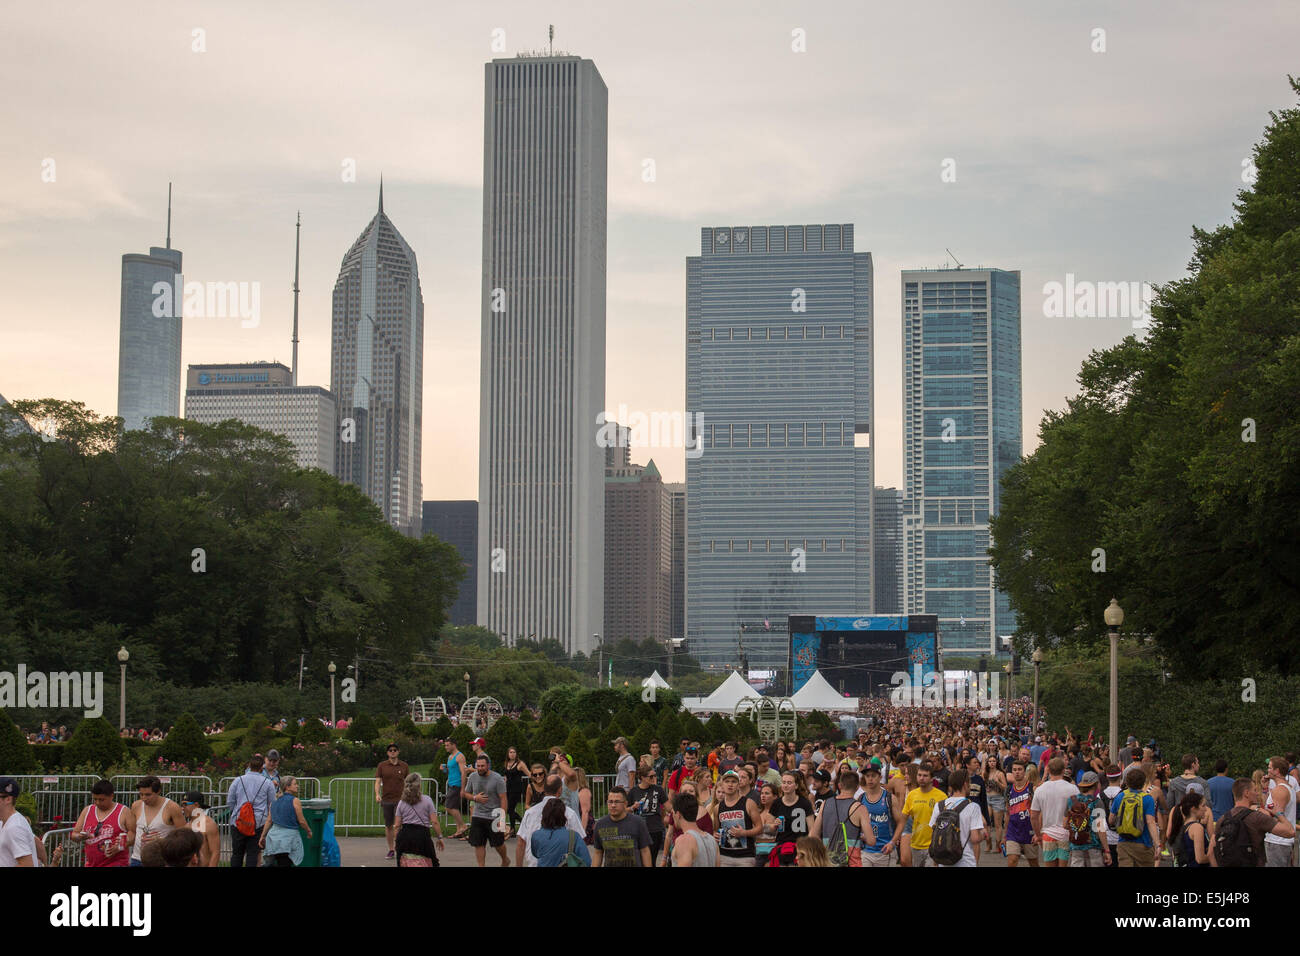 Chicago, Illinois, USA. 5th Jan, 2012. Fans swarm the north end of Grant Park to see Lorde perform at 2014 Lollapalooza - Stock Image